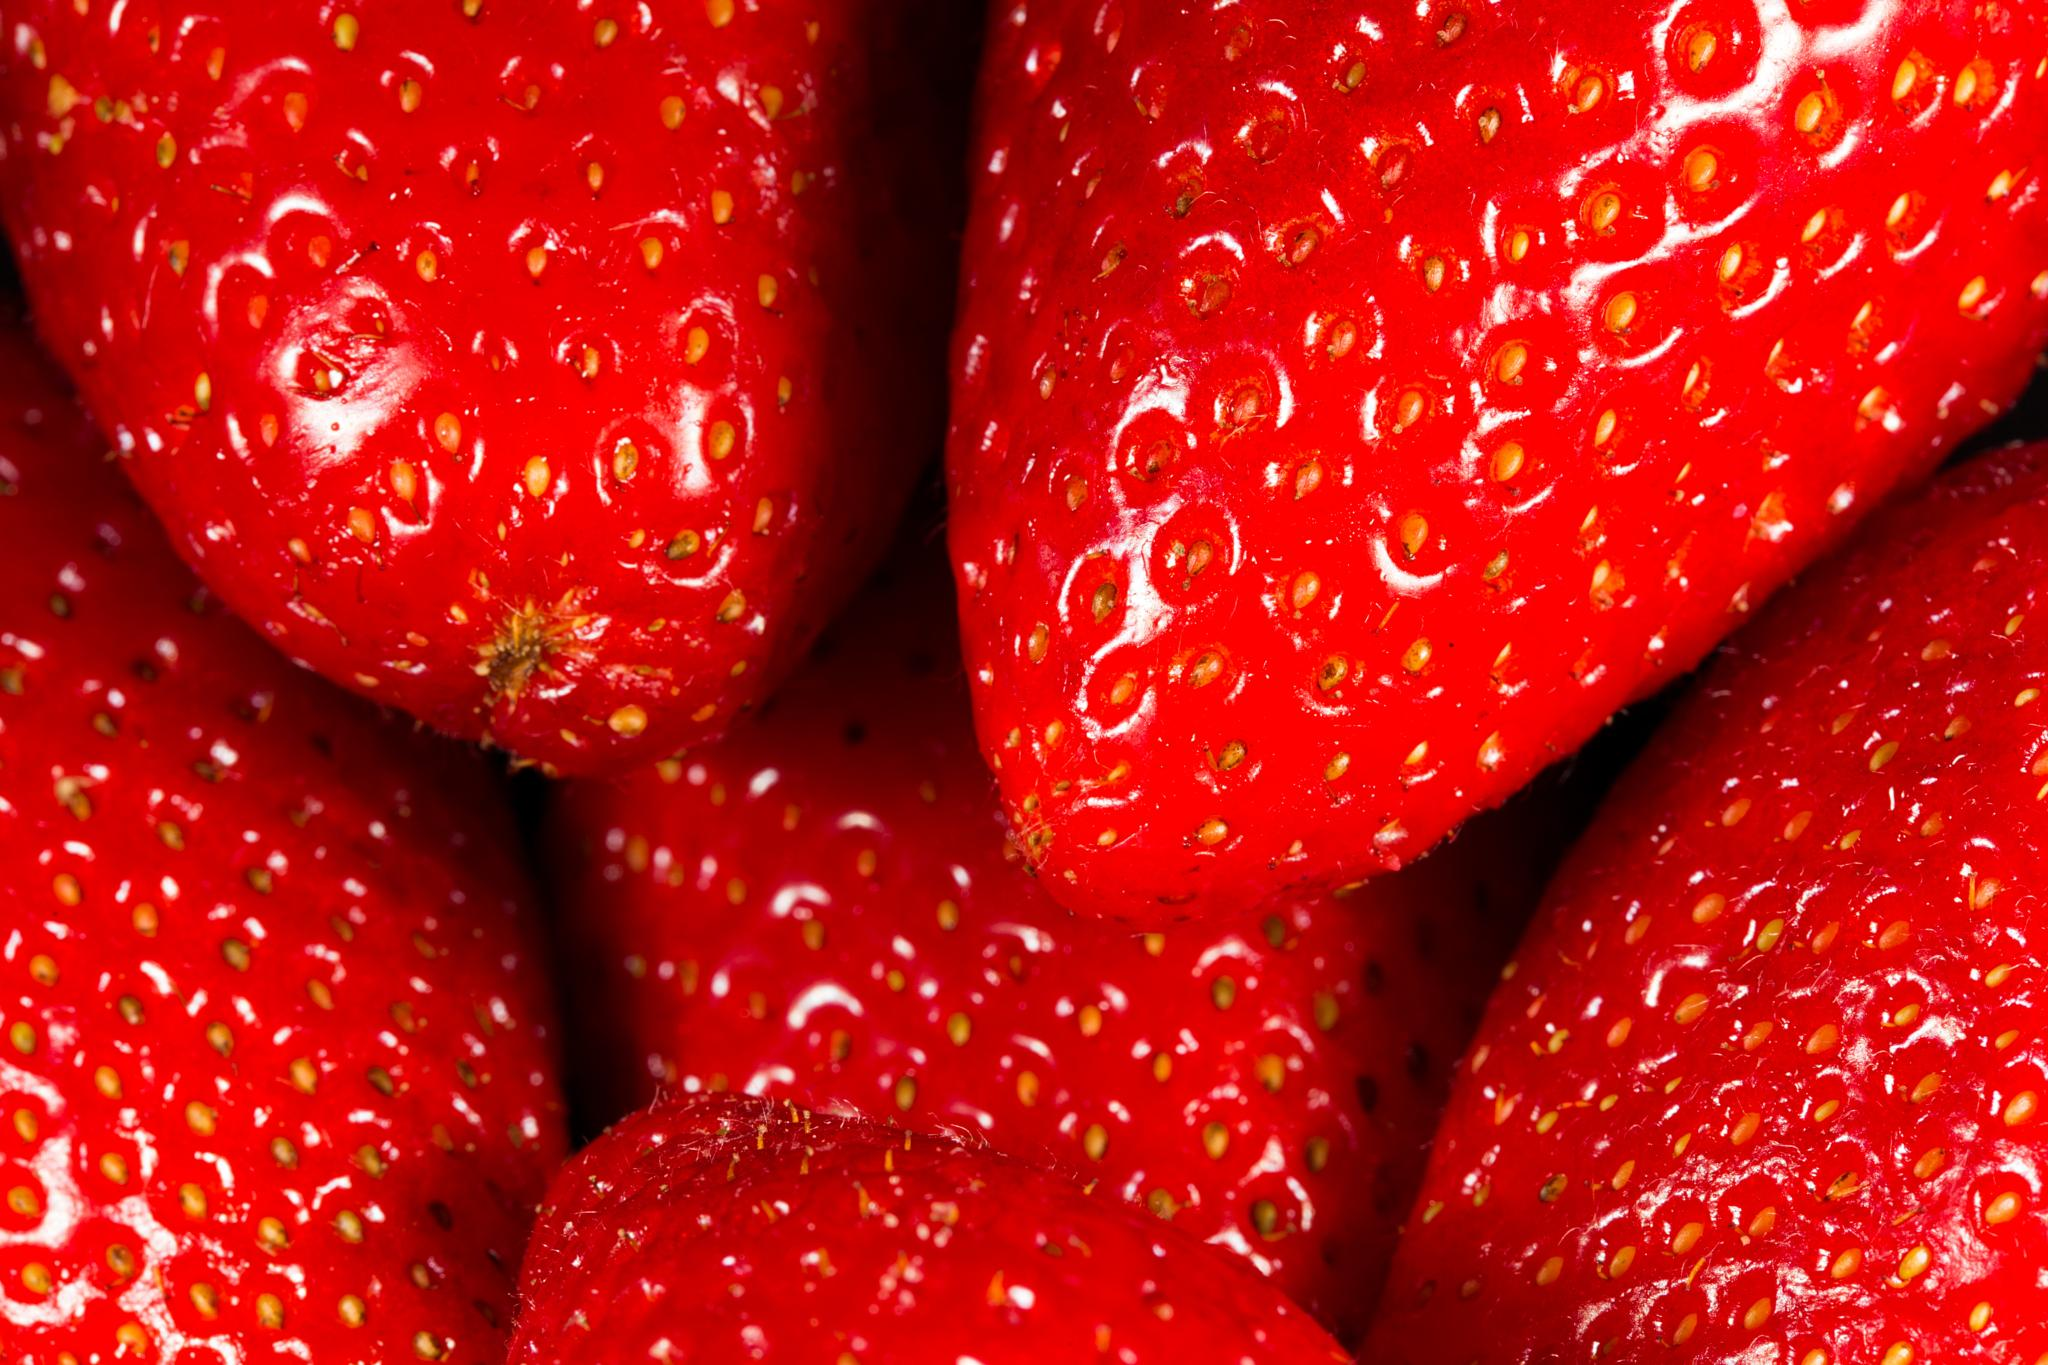 Strawberries by Paolo Tambellini